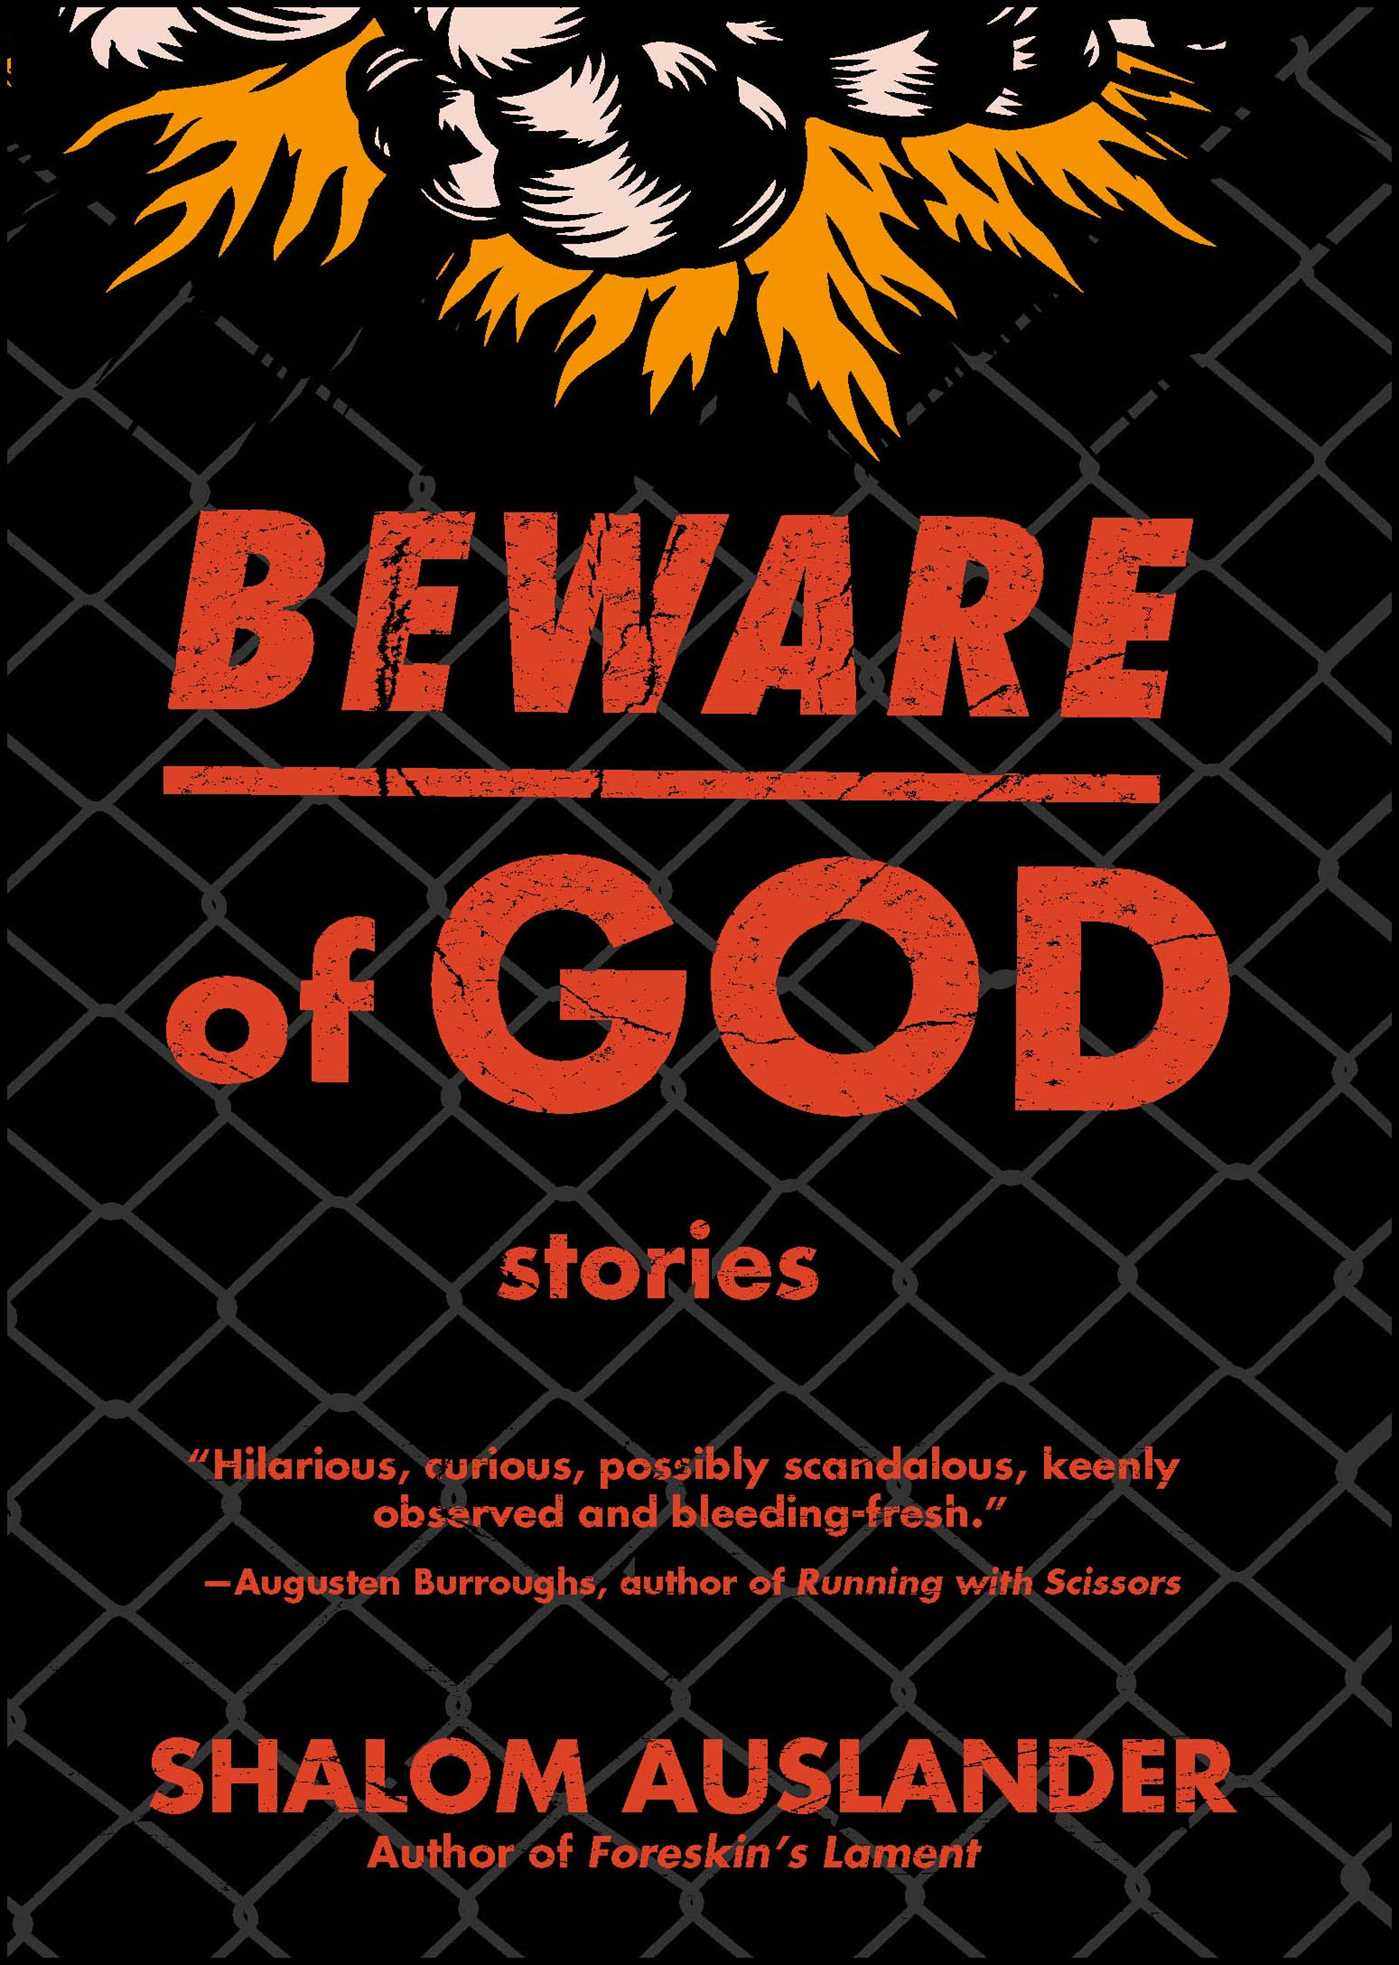 Beware of god 9780743264570 hr